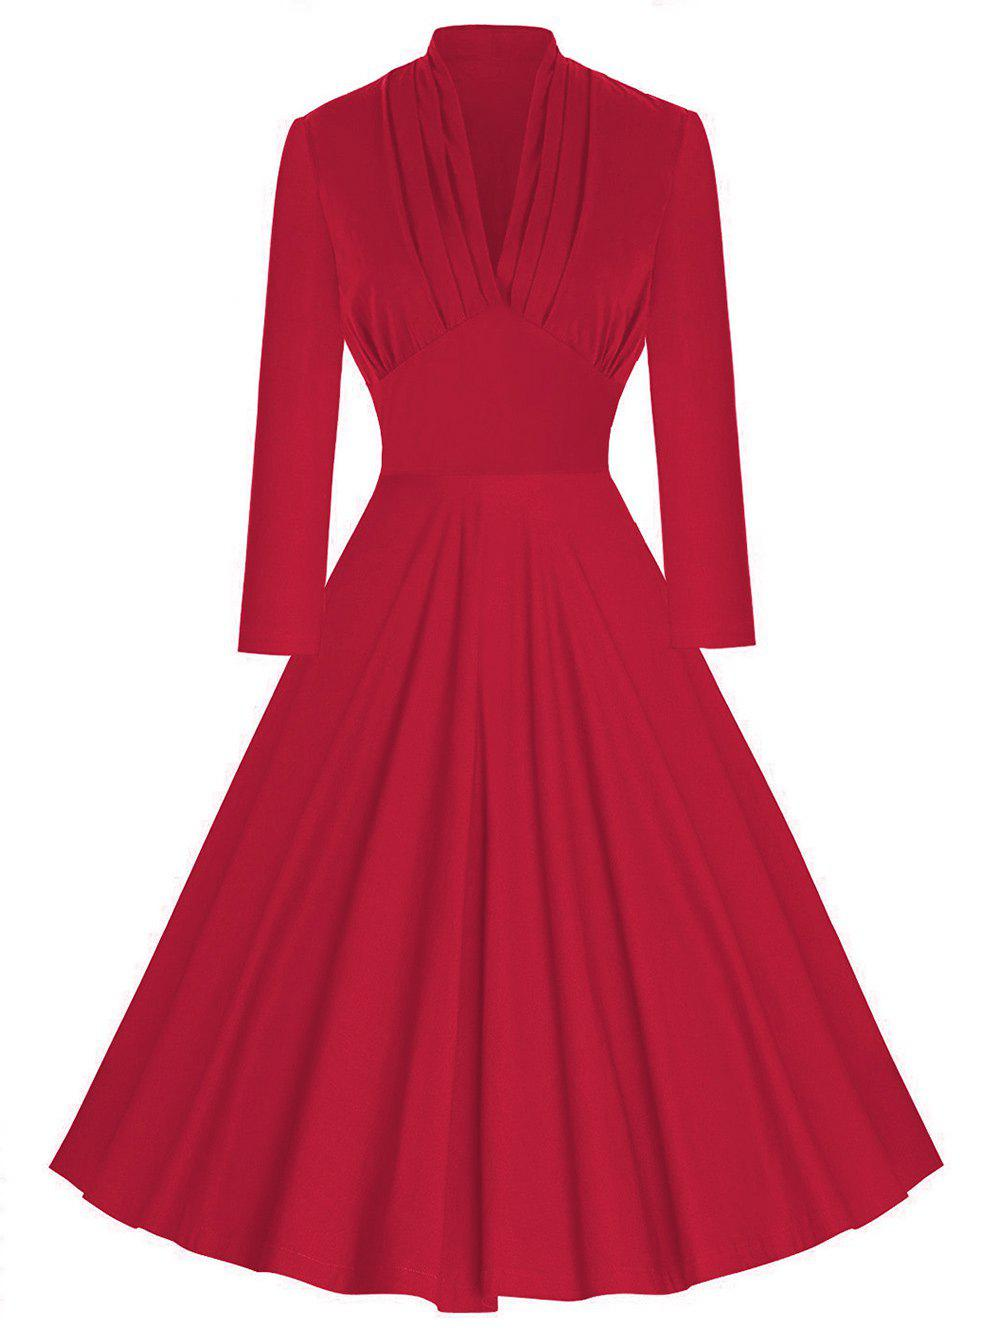 Vintage Pleated Plunging Empire Waist DressWOMEN<br><br>Size: M; Color: RED; Style: Vintage; Material: Polyester; Silhouette: A-Line; Dresses Length: Knee-Length; Neckline: Plunging Neck; Sleeve Length: Long Sleeves; Waist: Empire; Embellishment: Pleated; Pattern Type: Solid Color; With Belt: No; Season: Fall,Spring; Weight: 0.4000kg; Package Contents: 1 x Dress;